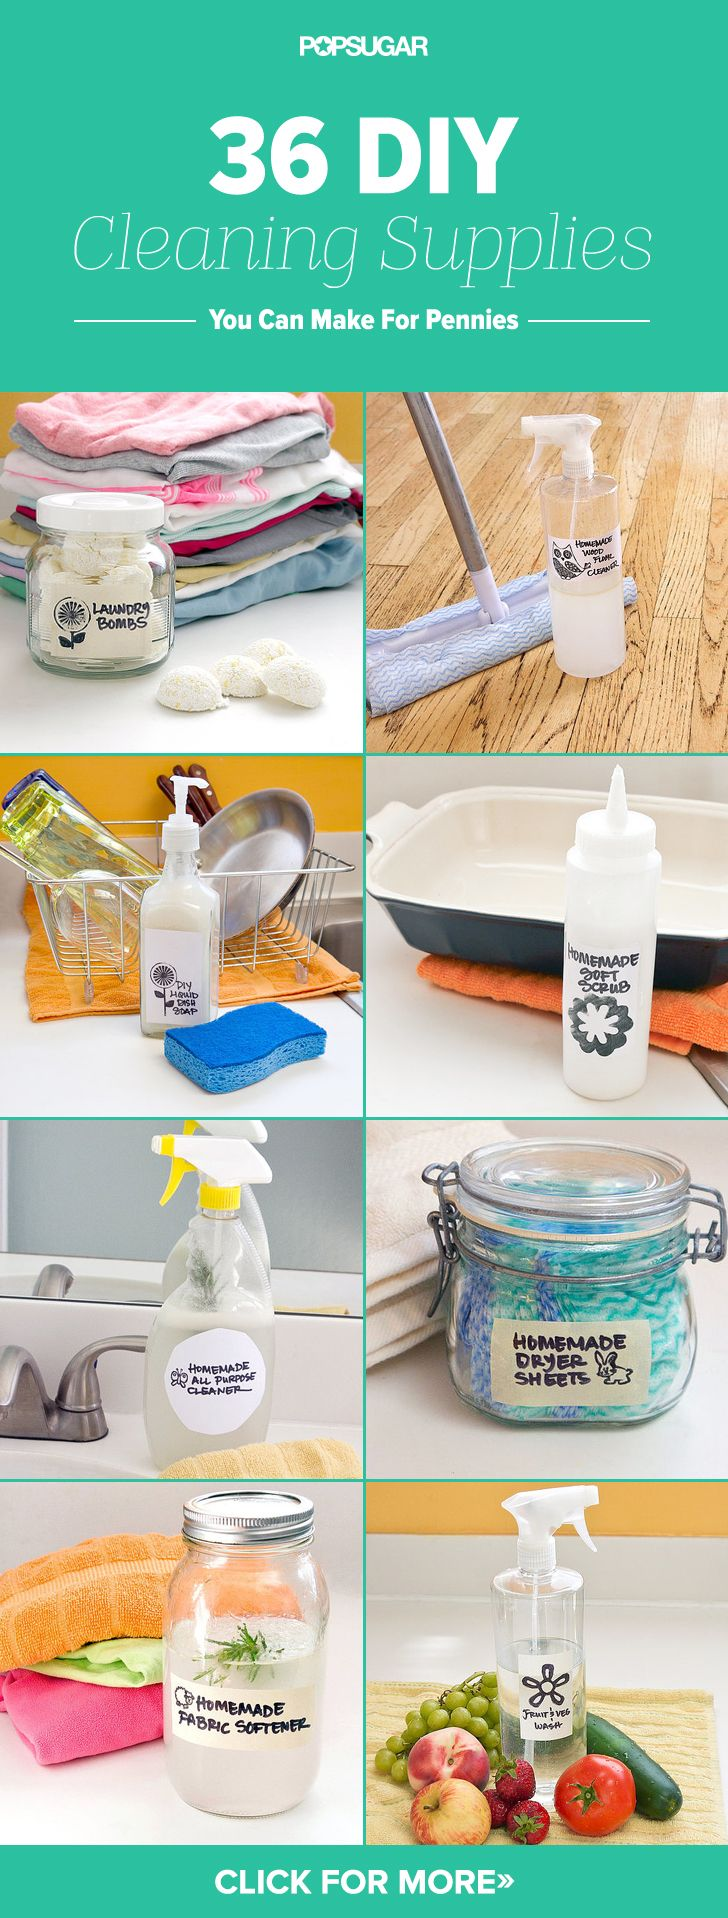 Make These 36 DIY Cleaning Products For Pennies